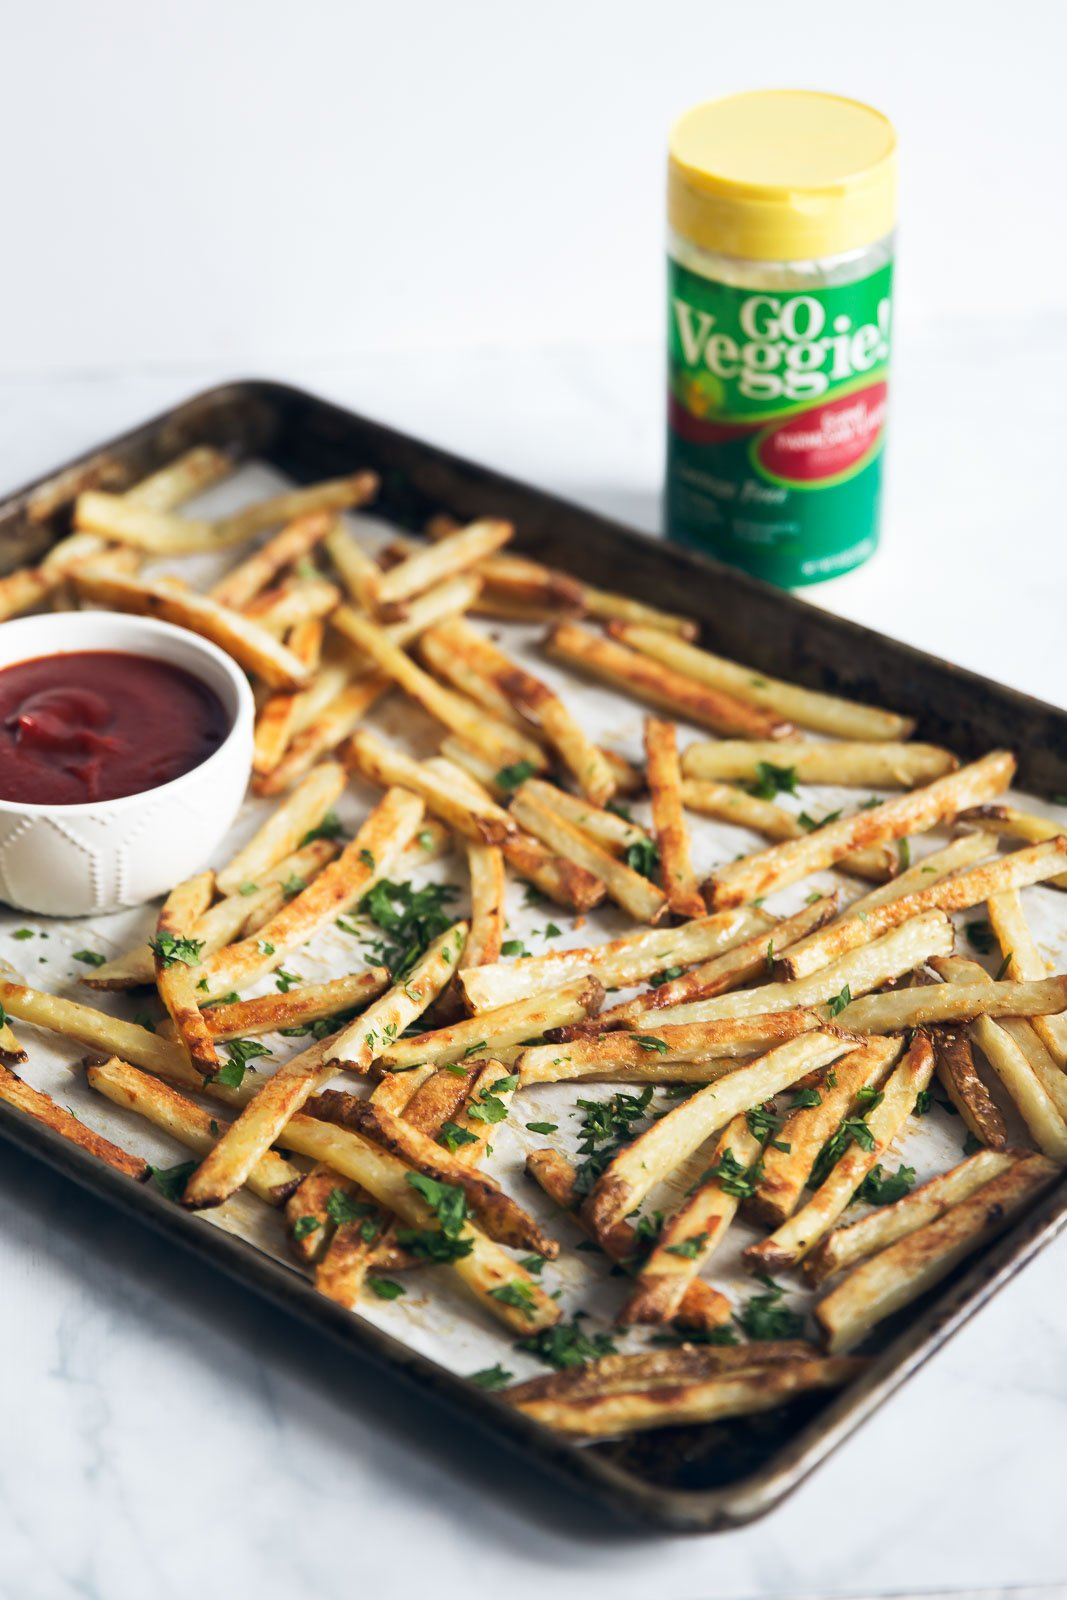 Crispy, homemade healthy baked french fries! Flavored with a little truffle oil, parmesan and garlic. A restaurant favorite you can make right at home.